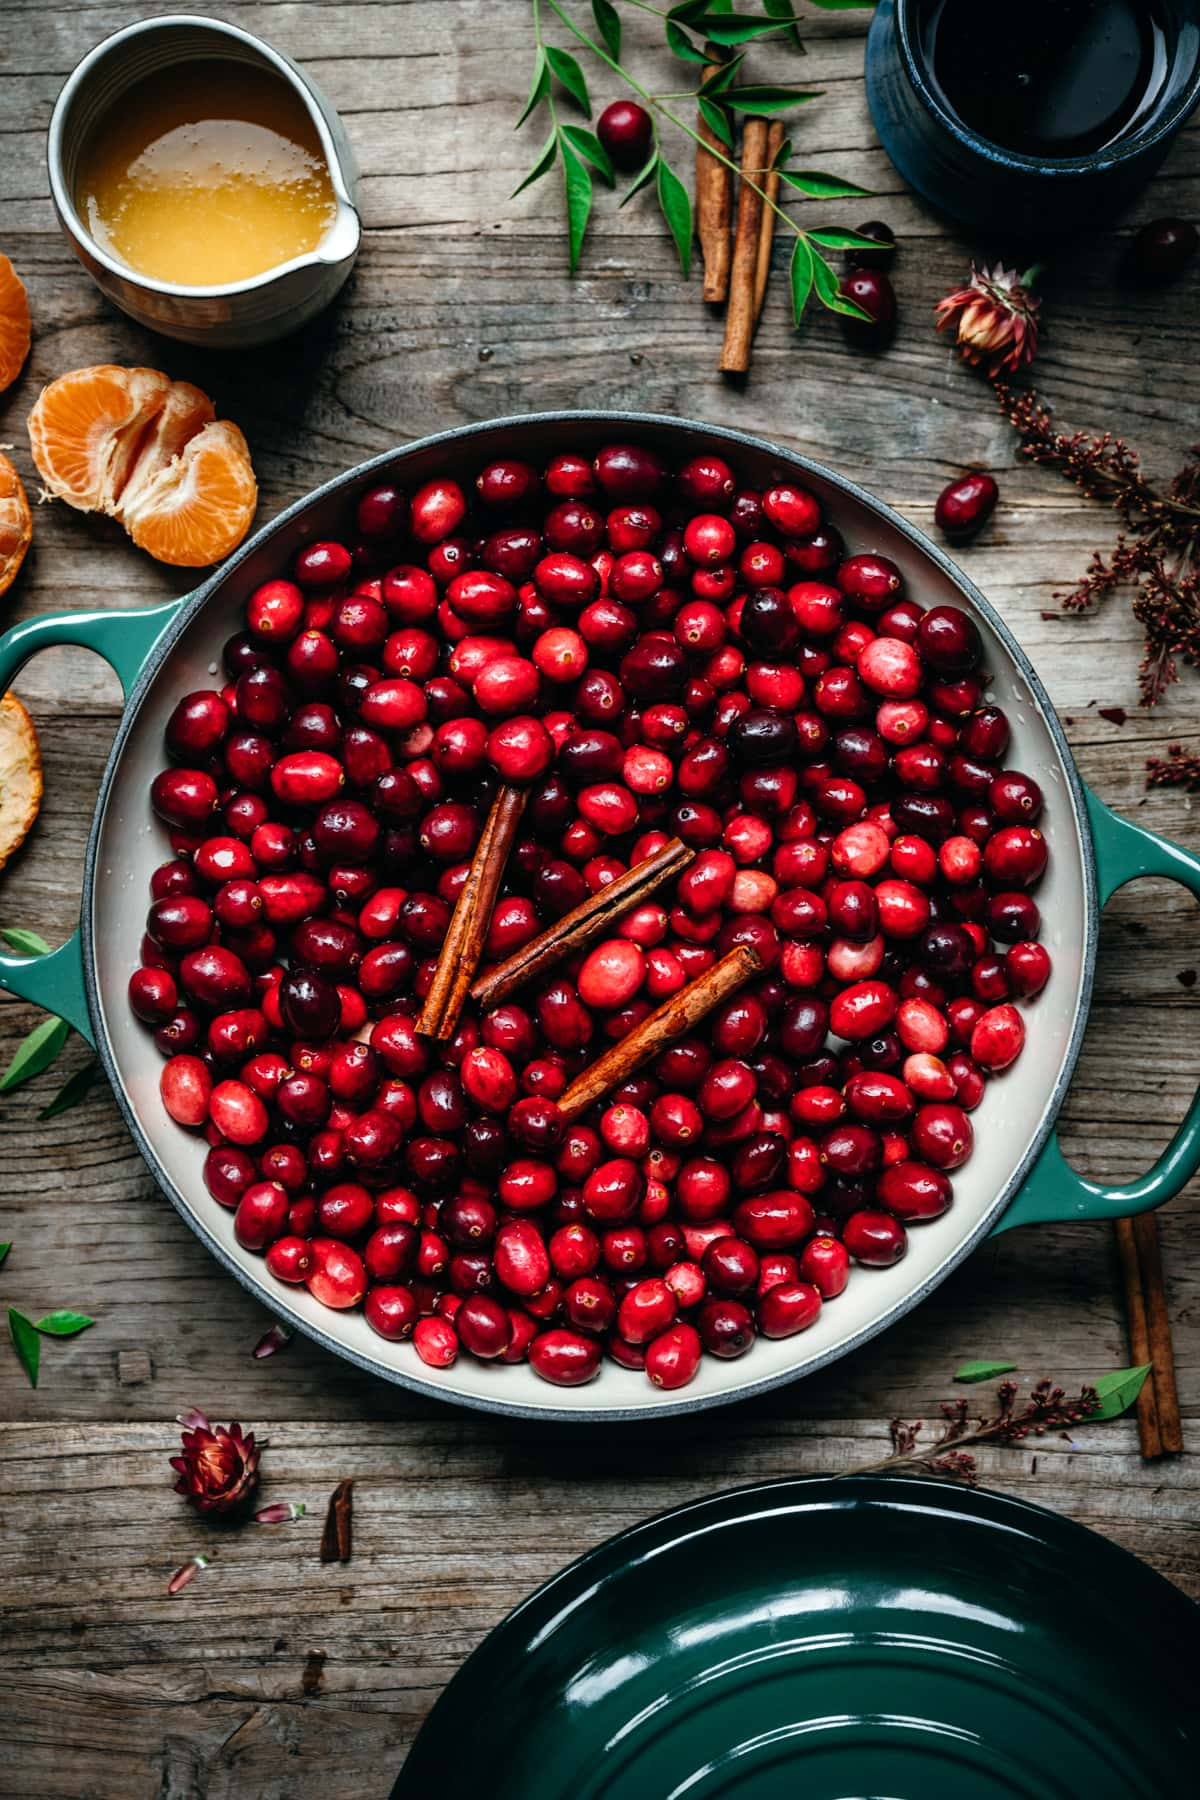 overhead view of fresh cranberries in a pot with cinnamon sticks.